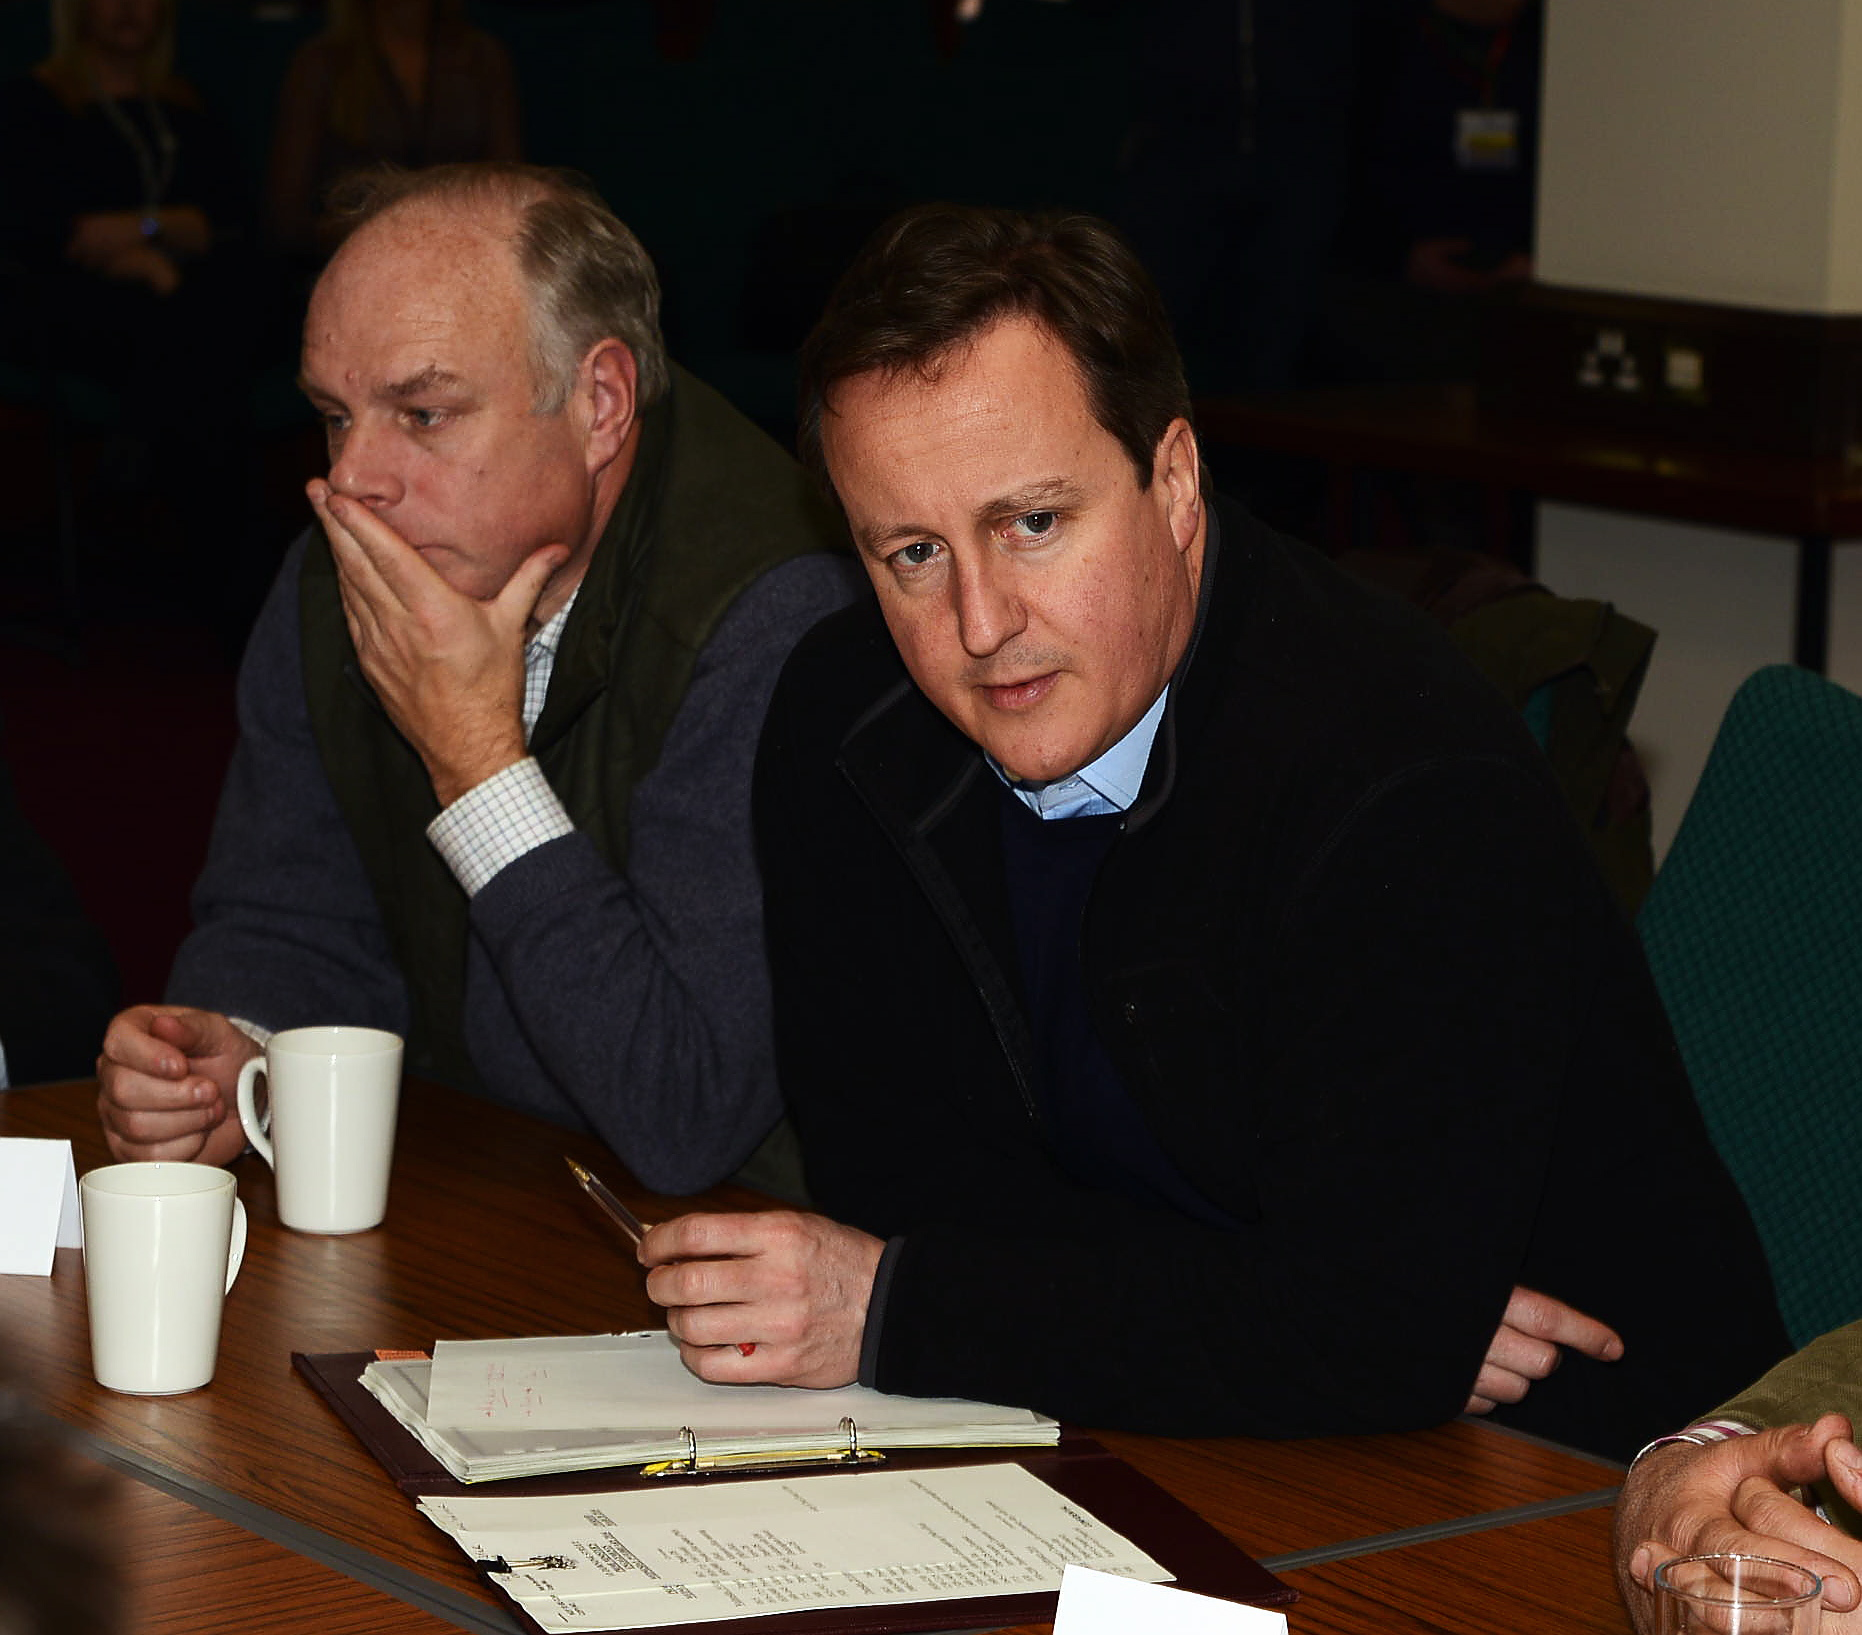 Bridgwater MP Ian Liddell-Grainger talks with David Cameron about the flood plan